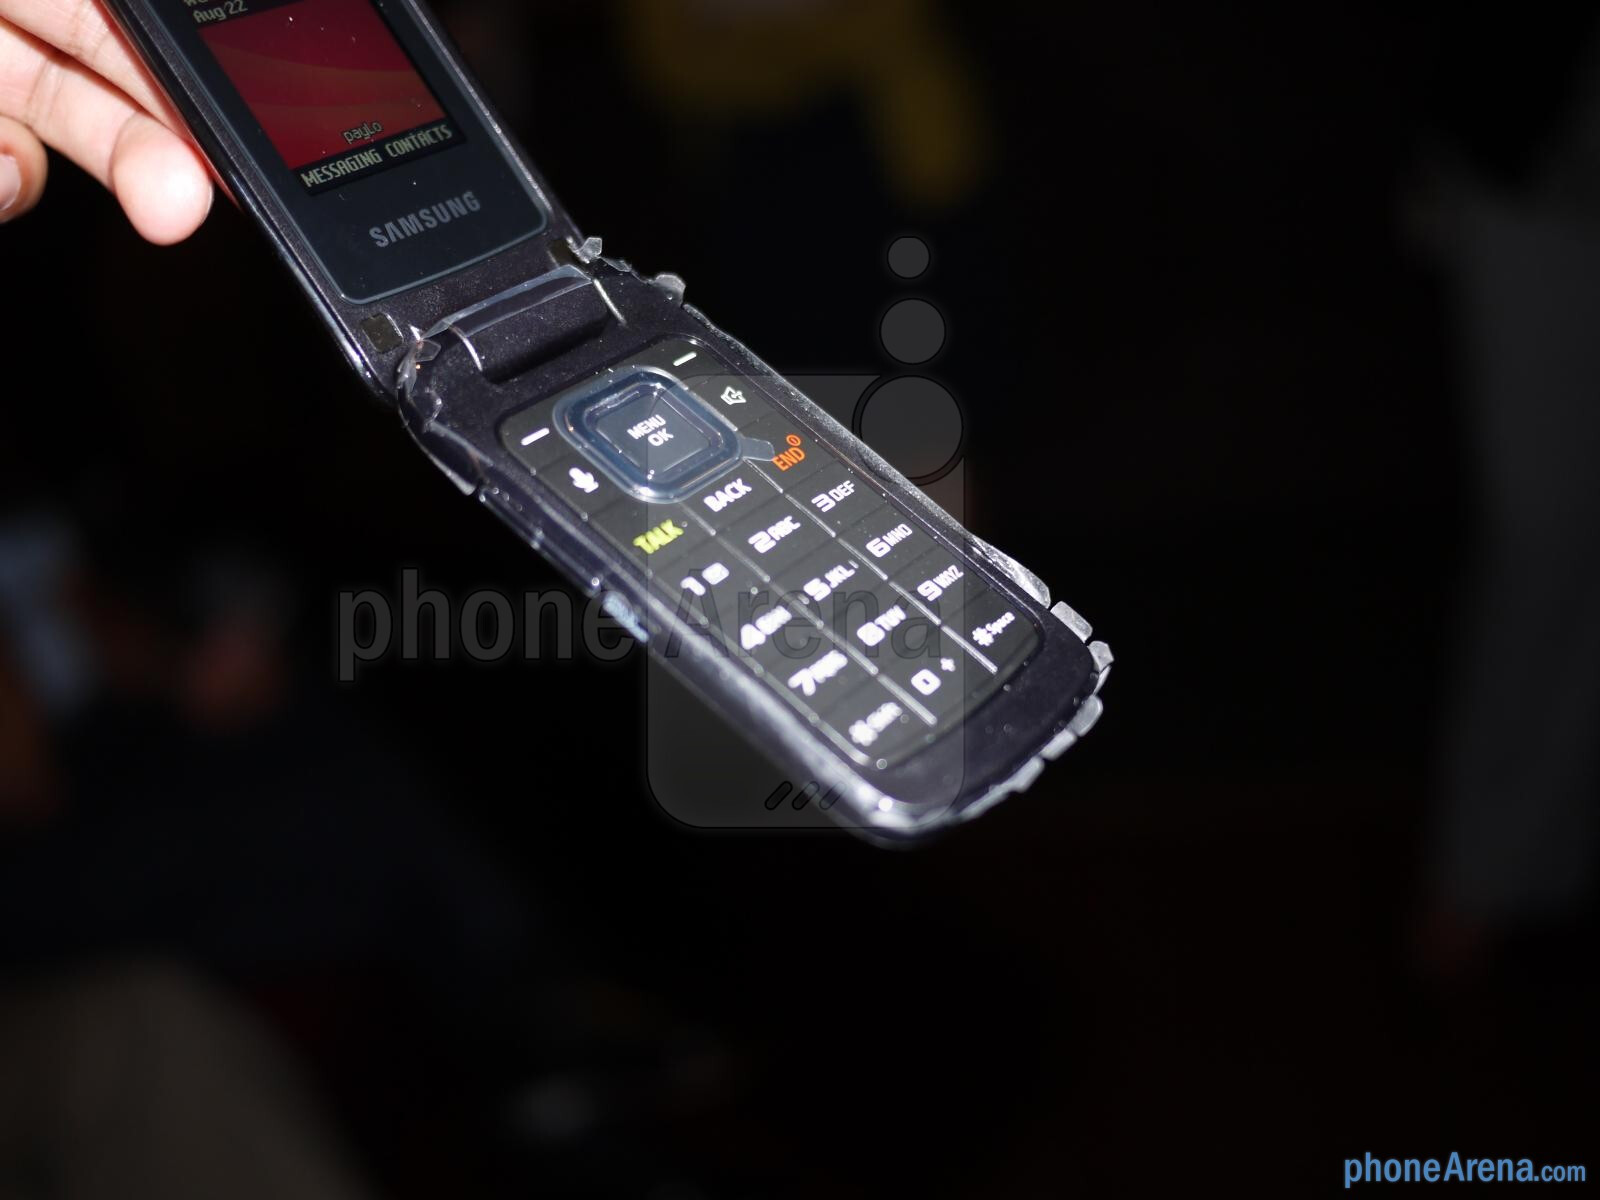 Upcoming virgin cell phones 2010